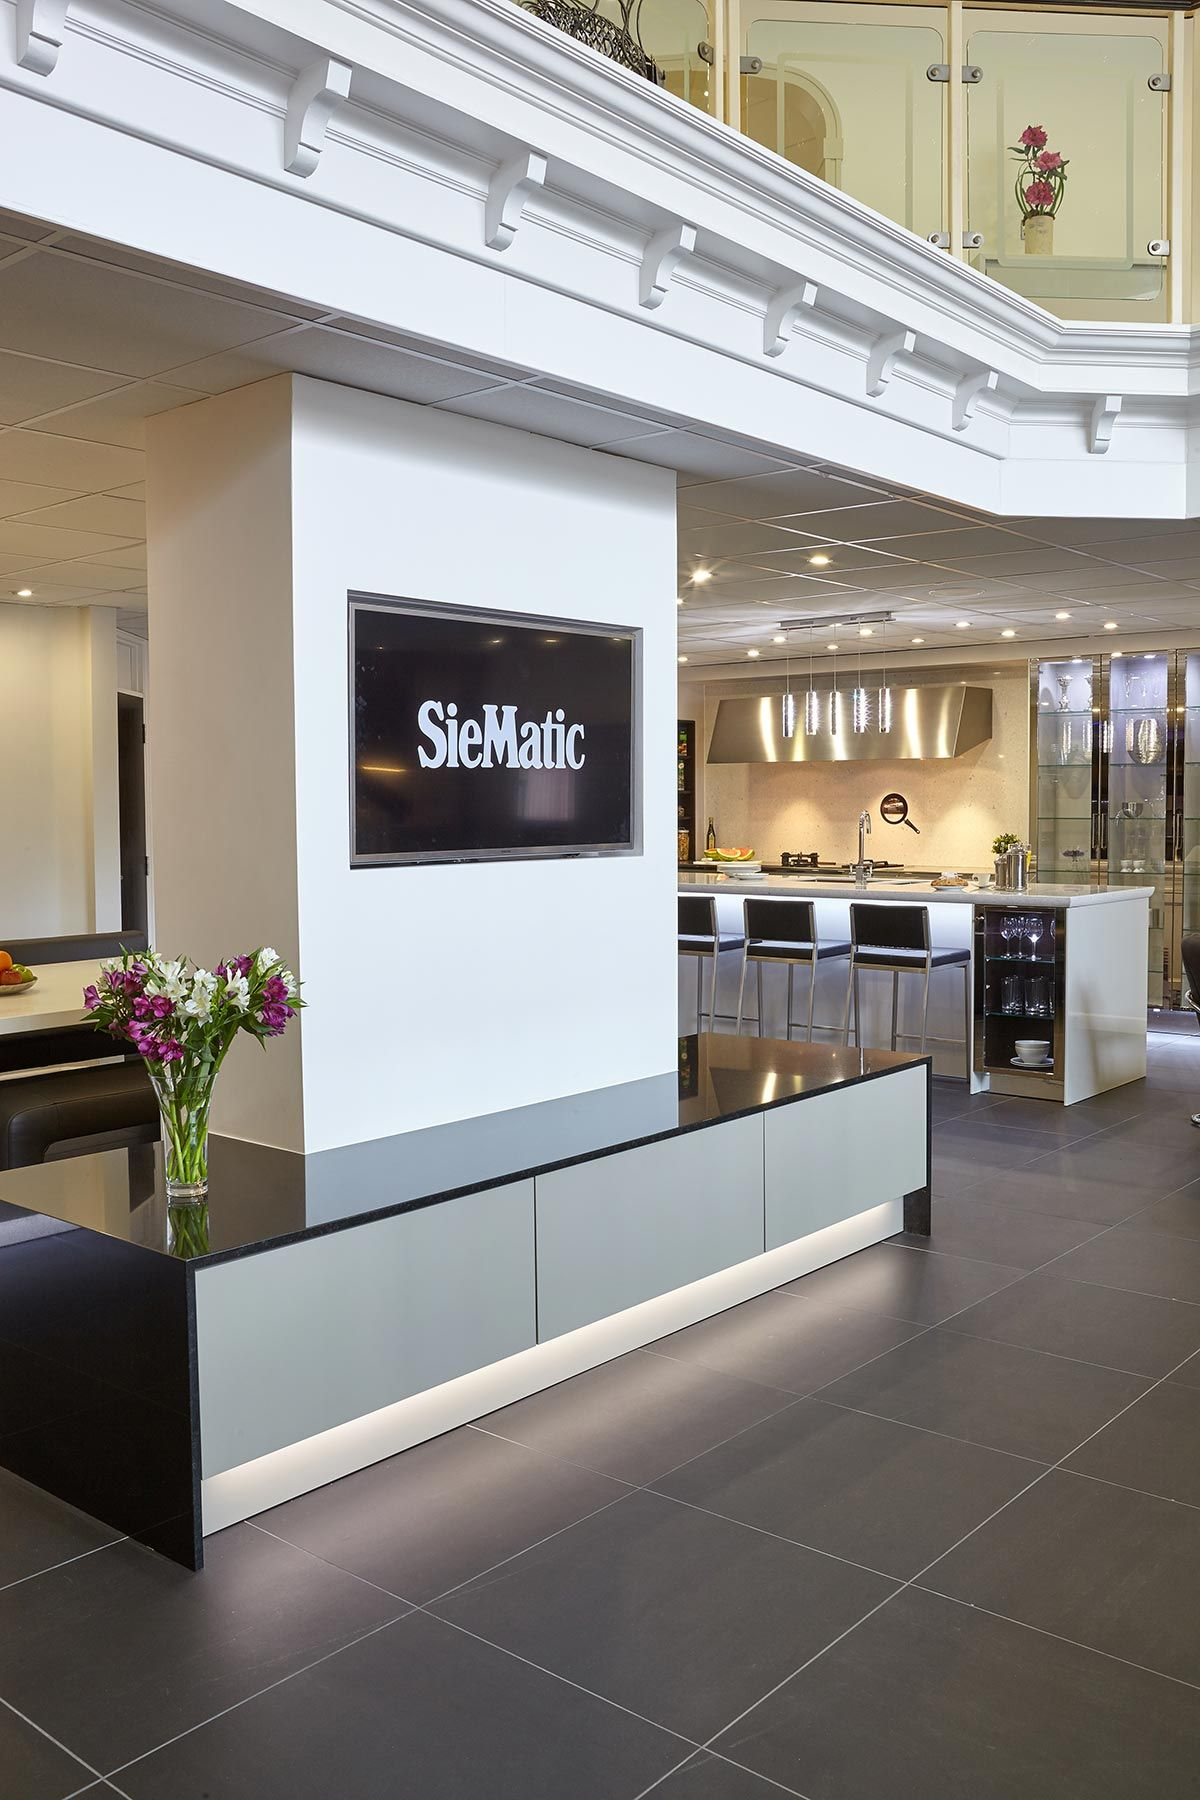 Siemens & Siematic Showroom | Siematic + Siemens Centre @Spillers of